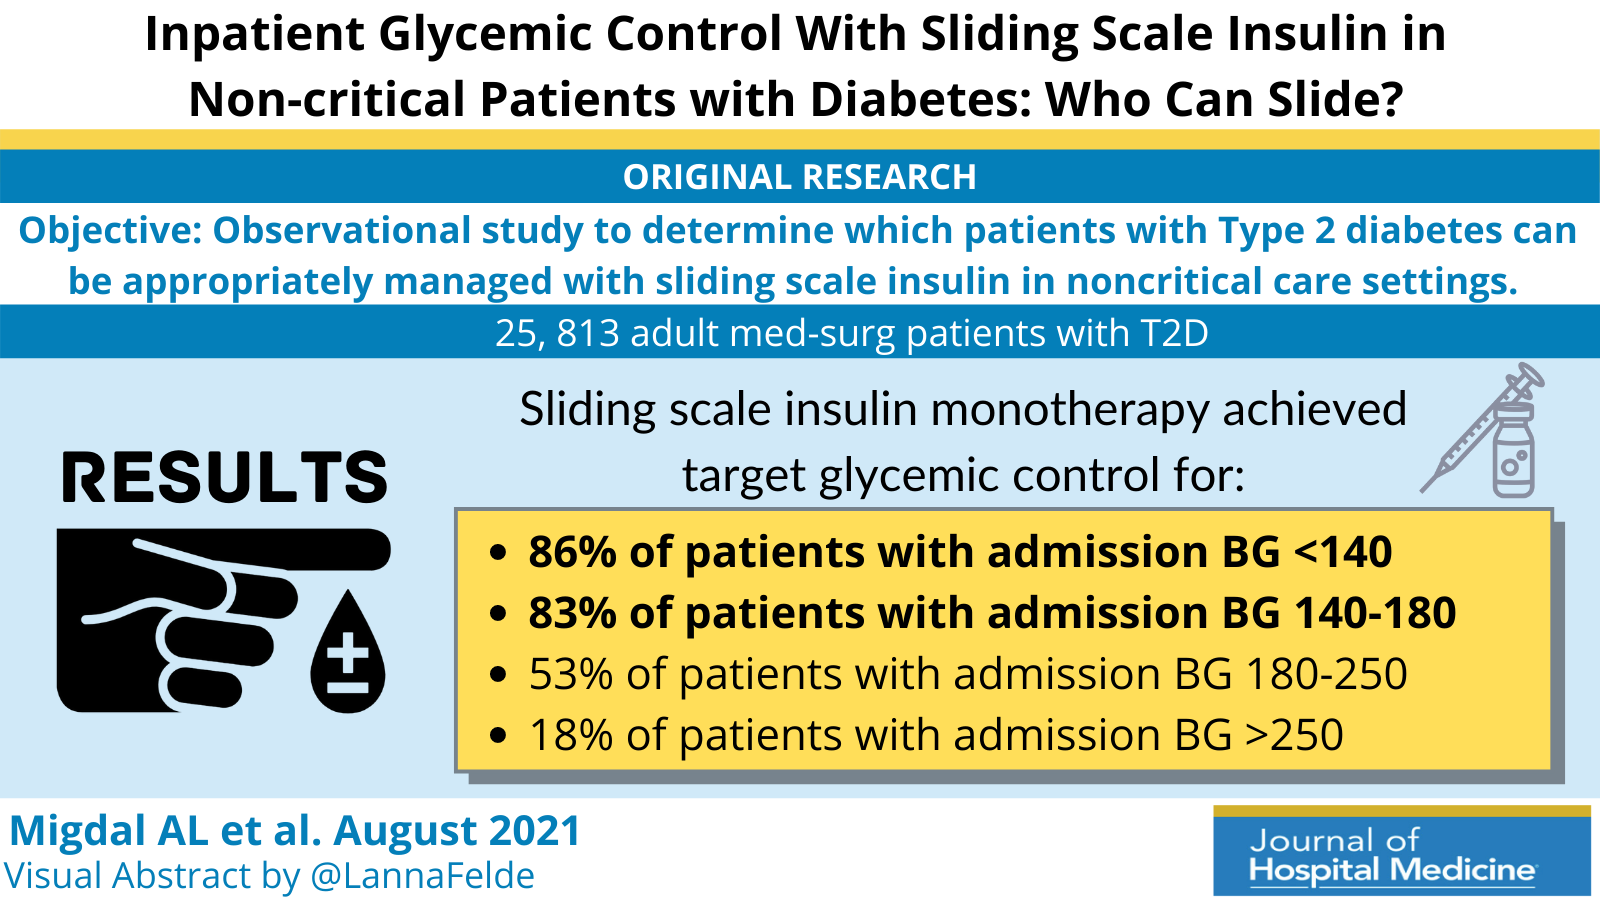 Inpatient Glycemic Control With Sliding Scale Insulin in Noncritical Patients With Type 2 Diabetes: Who Can Slide?